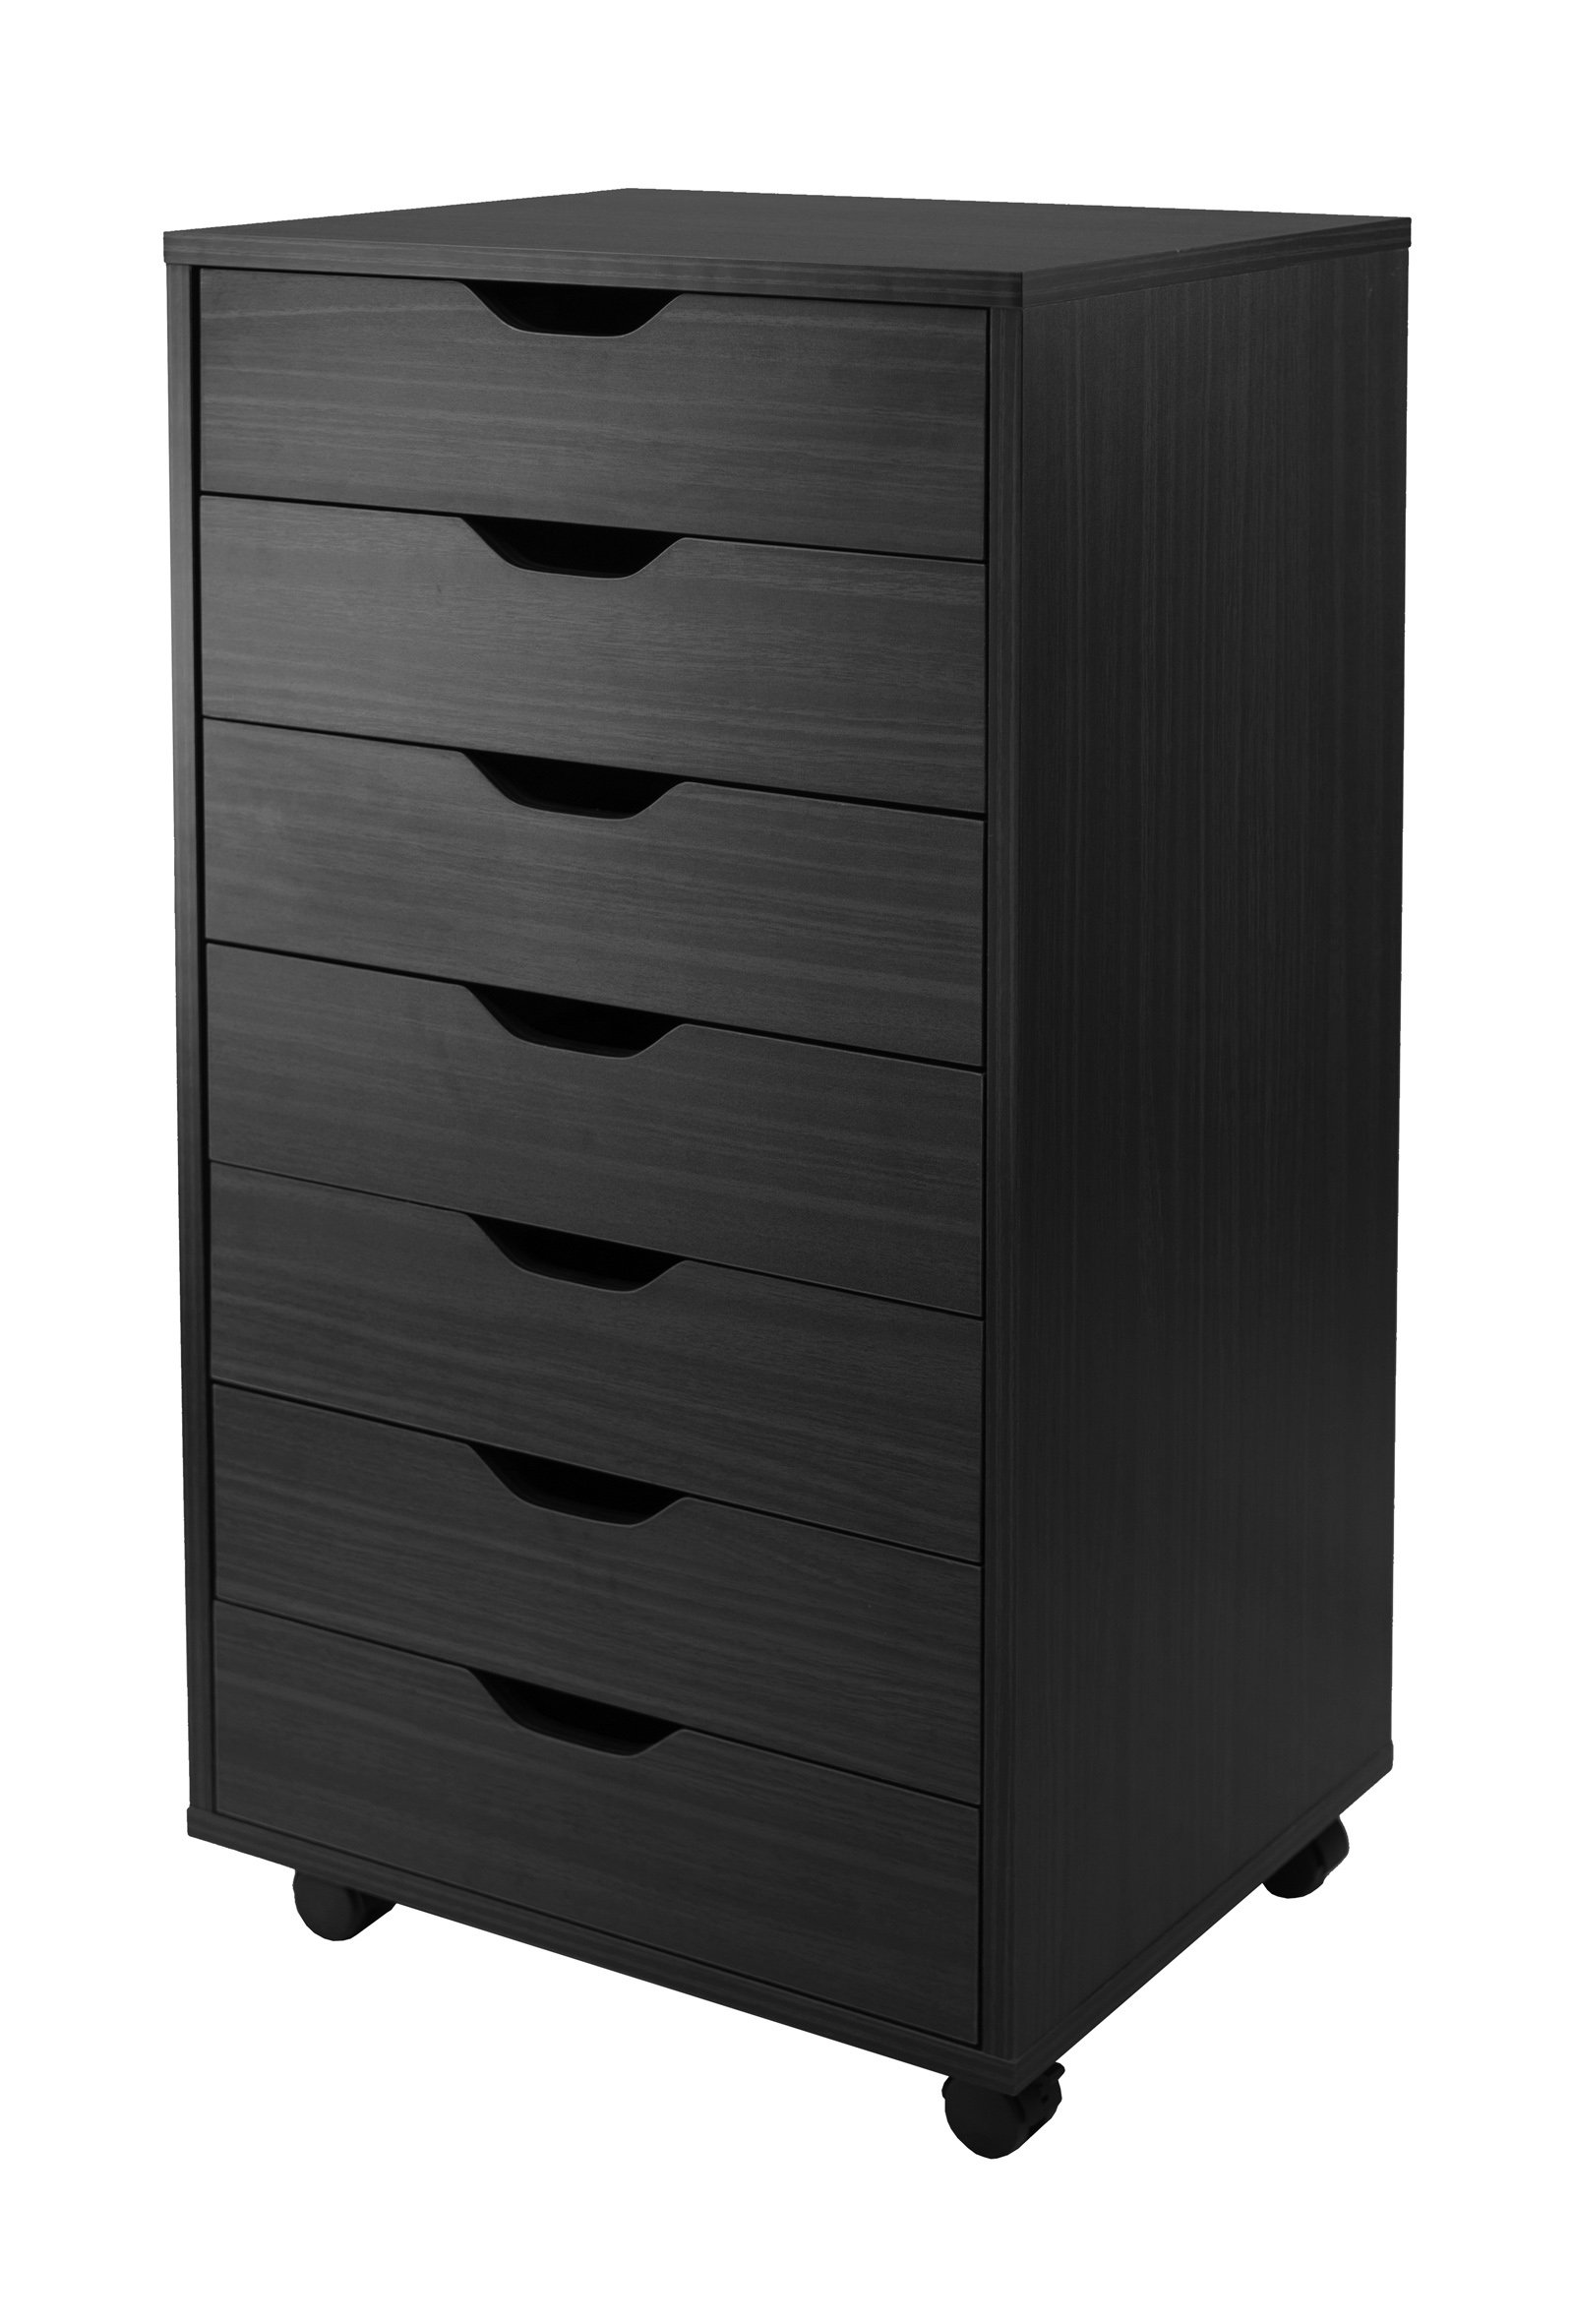 Winsome Halifax Cabinet for Closet/Office, 7 Drawers, Black by Winsome (Image #1)